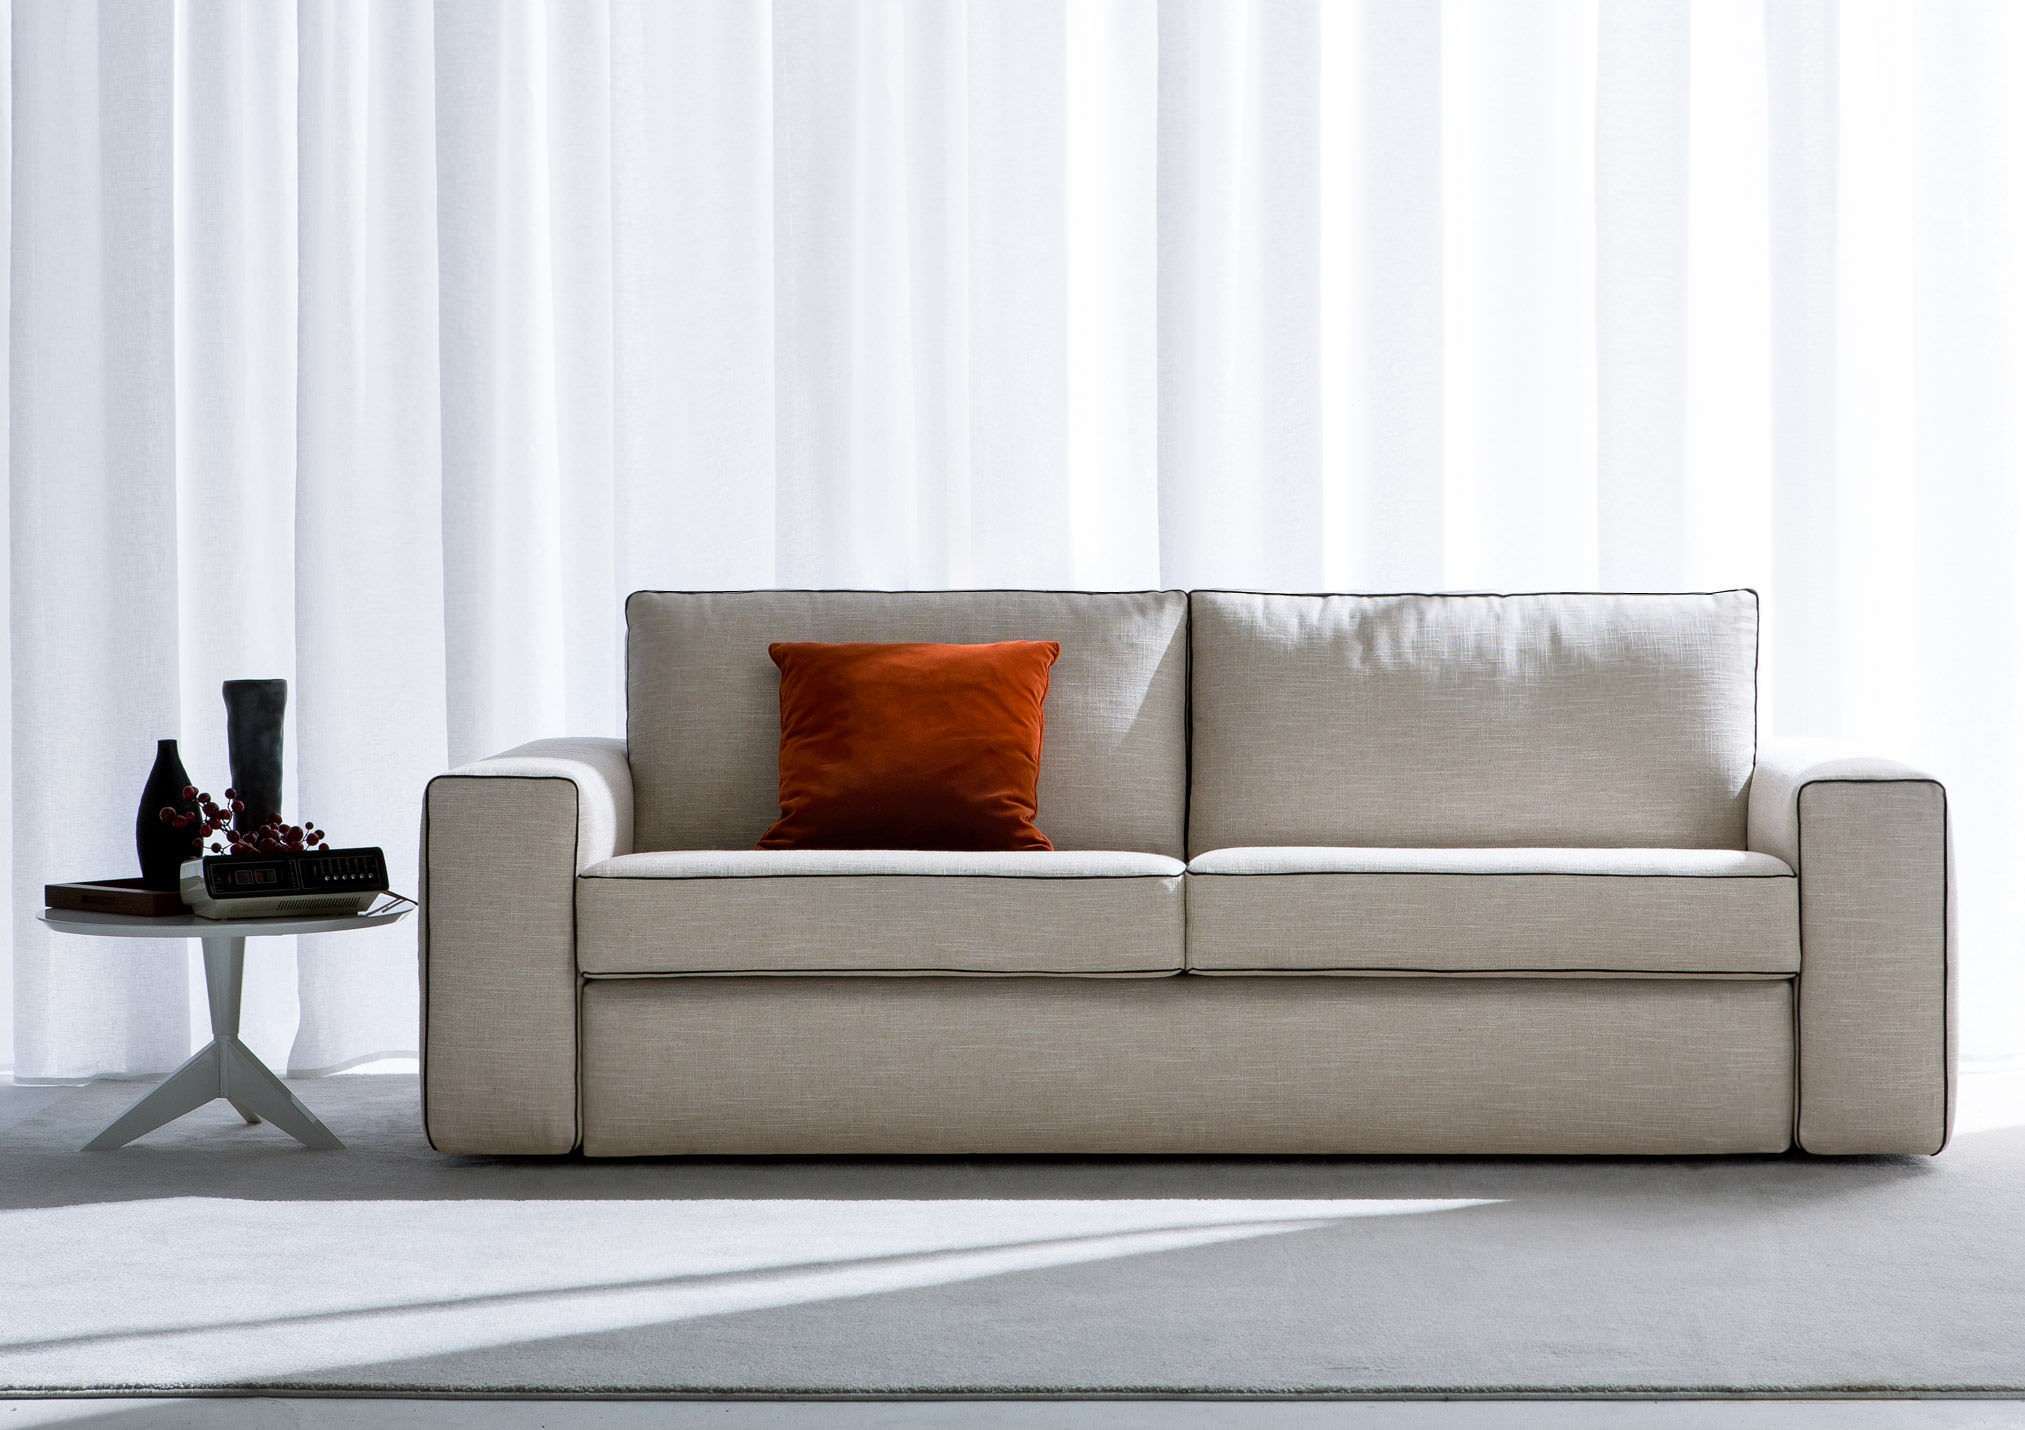 Comfortable sofa Bed Modern Beautiful fortable sofa Bed Modern sofa Inspiration with Picture